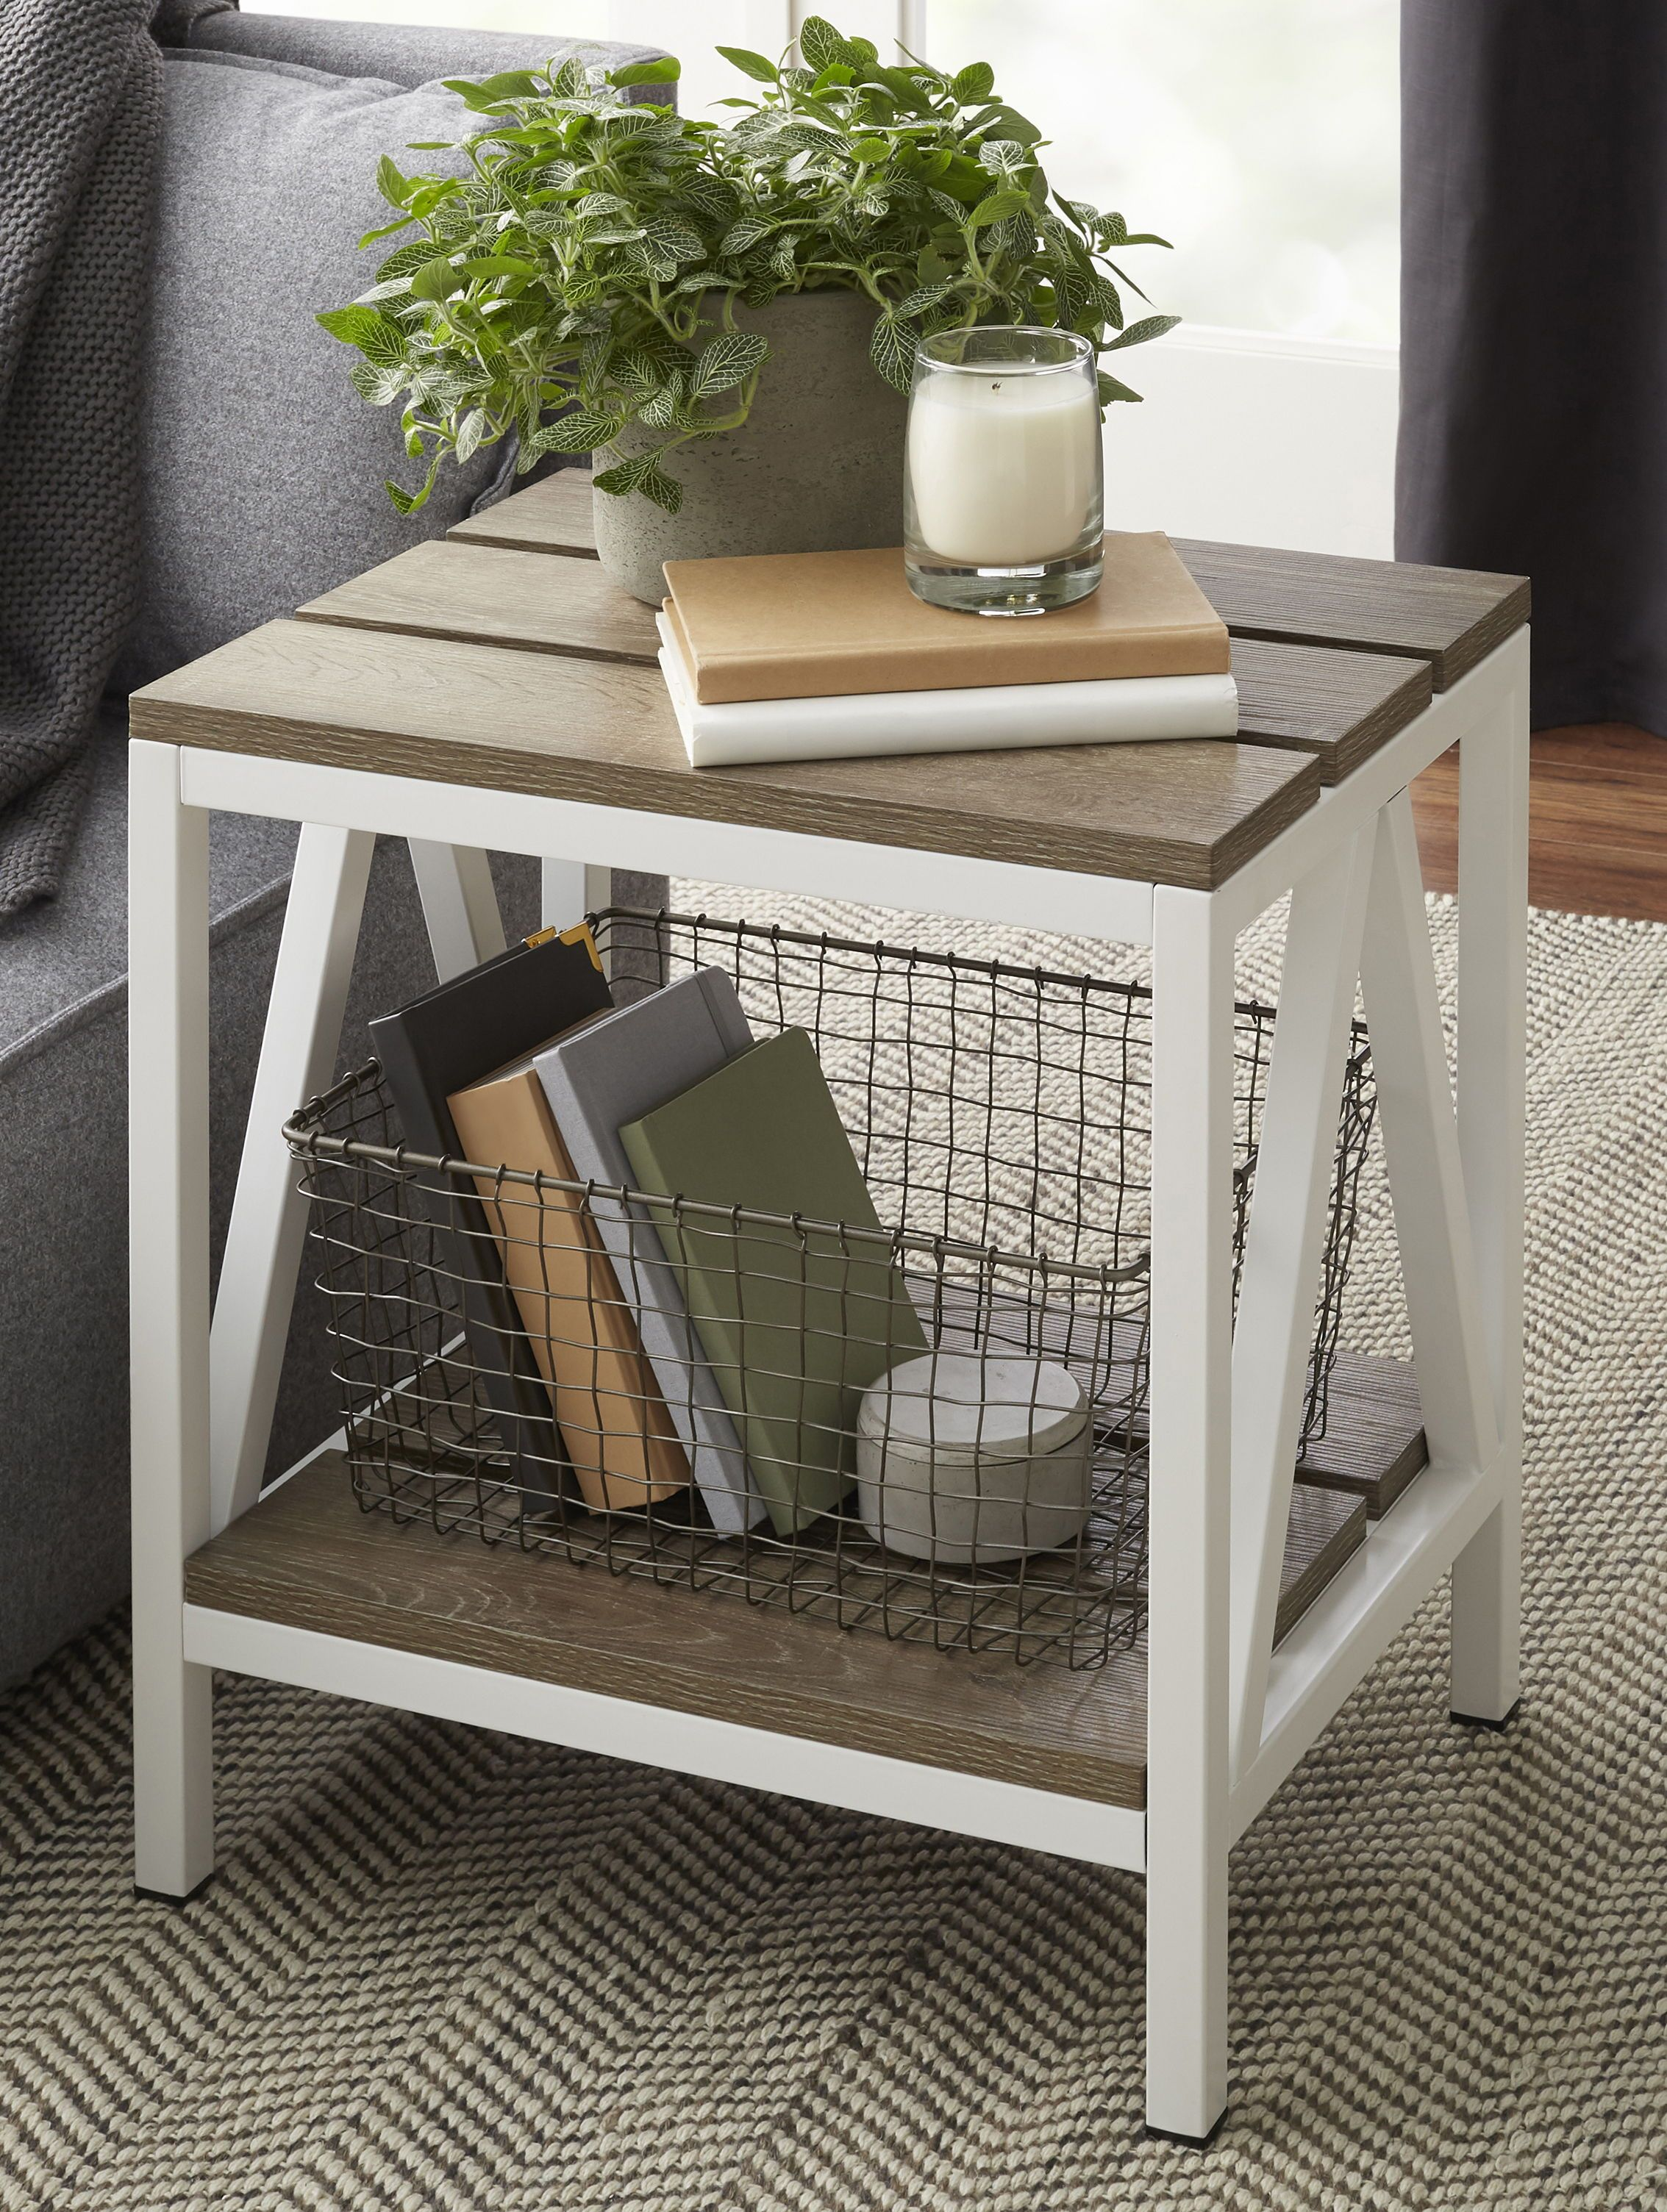 Shop By Brand Table Decor Living Room Side Table Decor Rustic